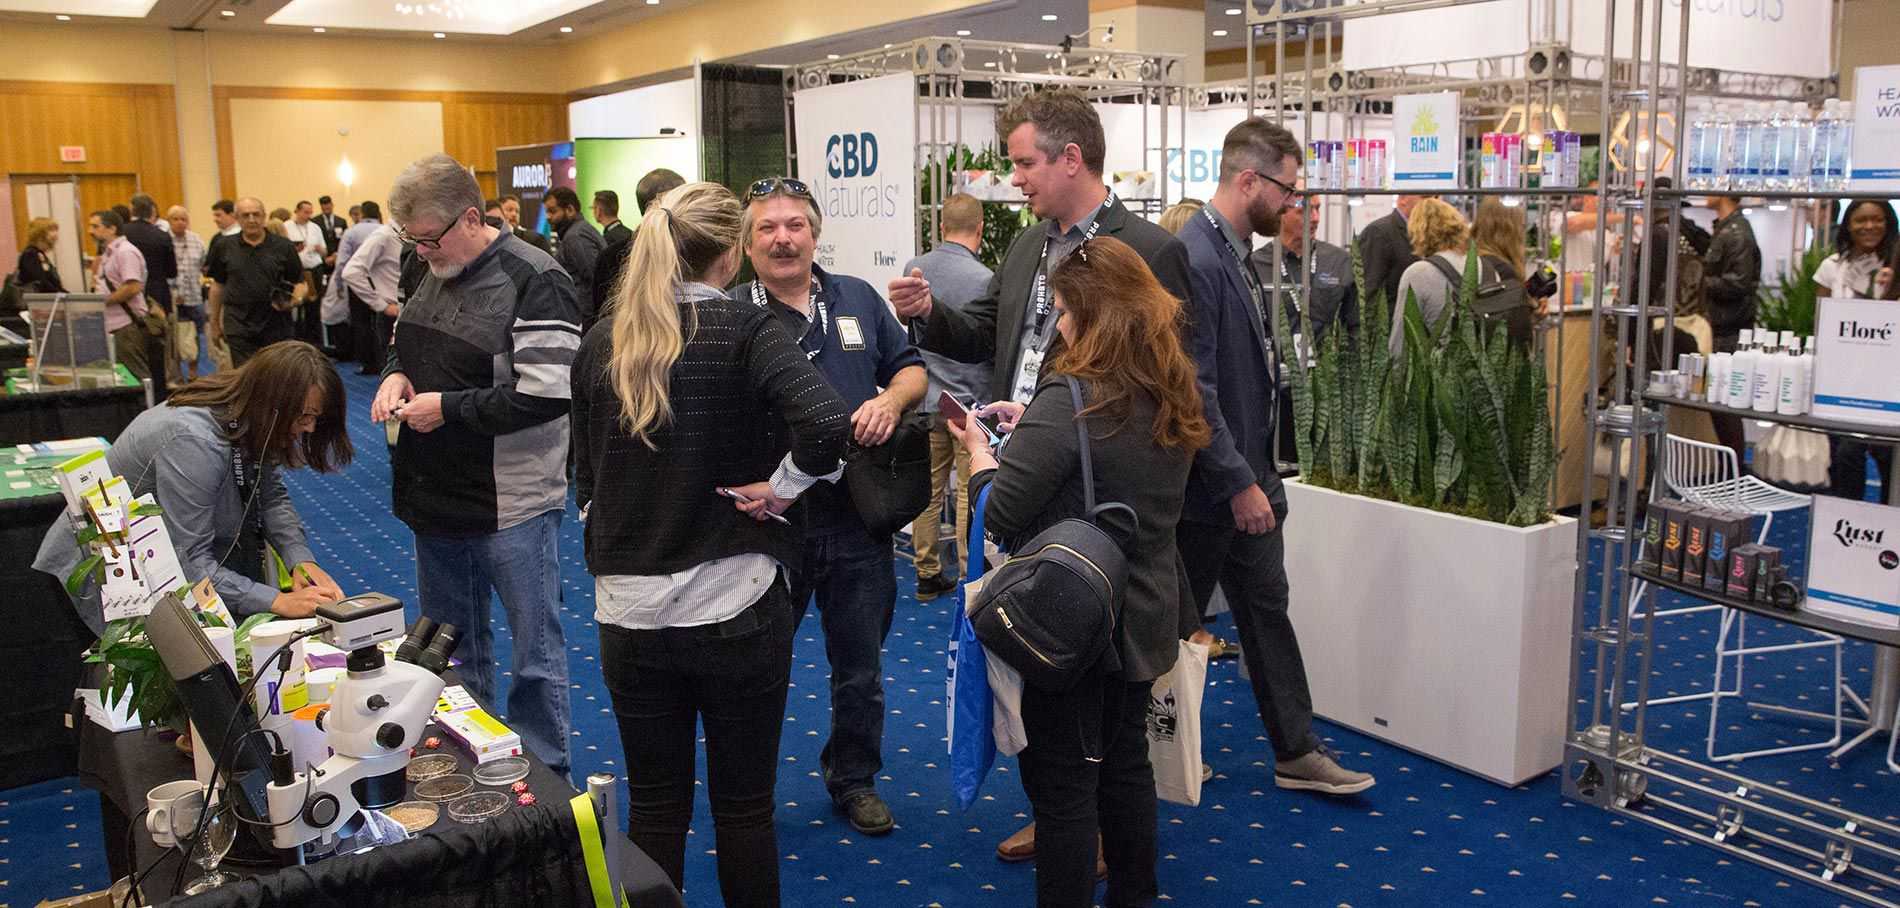 cannabis conference CBD exhibitors booths